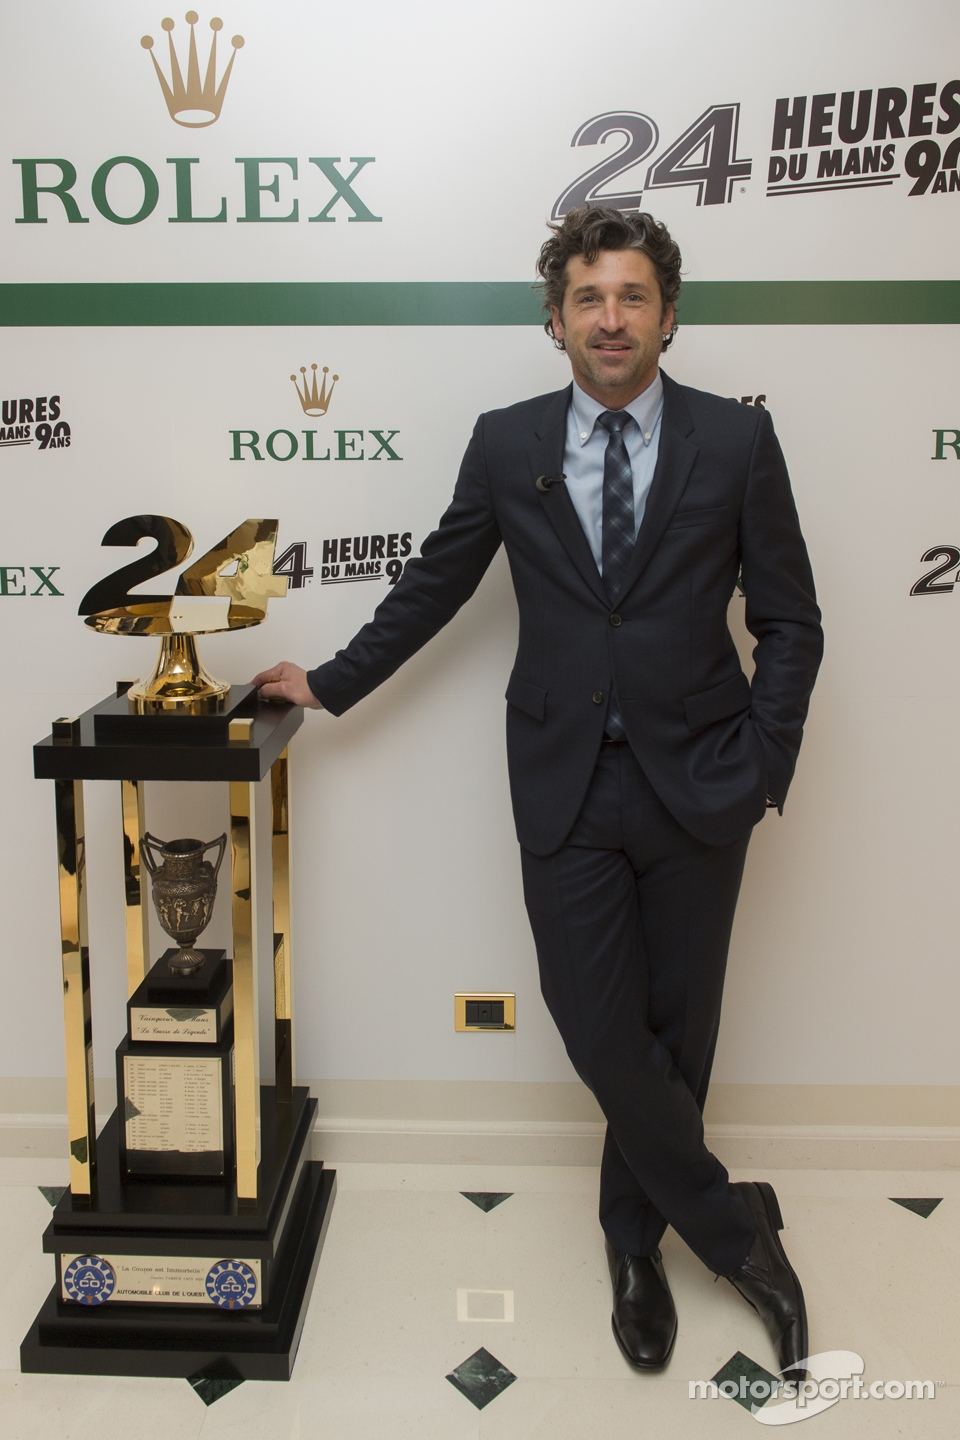 Patrick Dempsey with the 24 Hours of Le Mans trophy